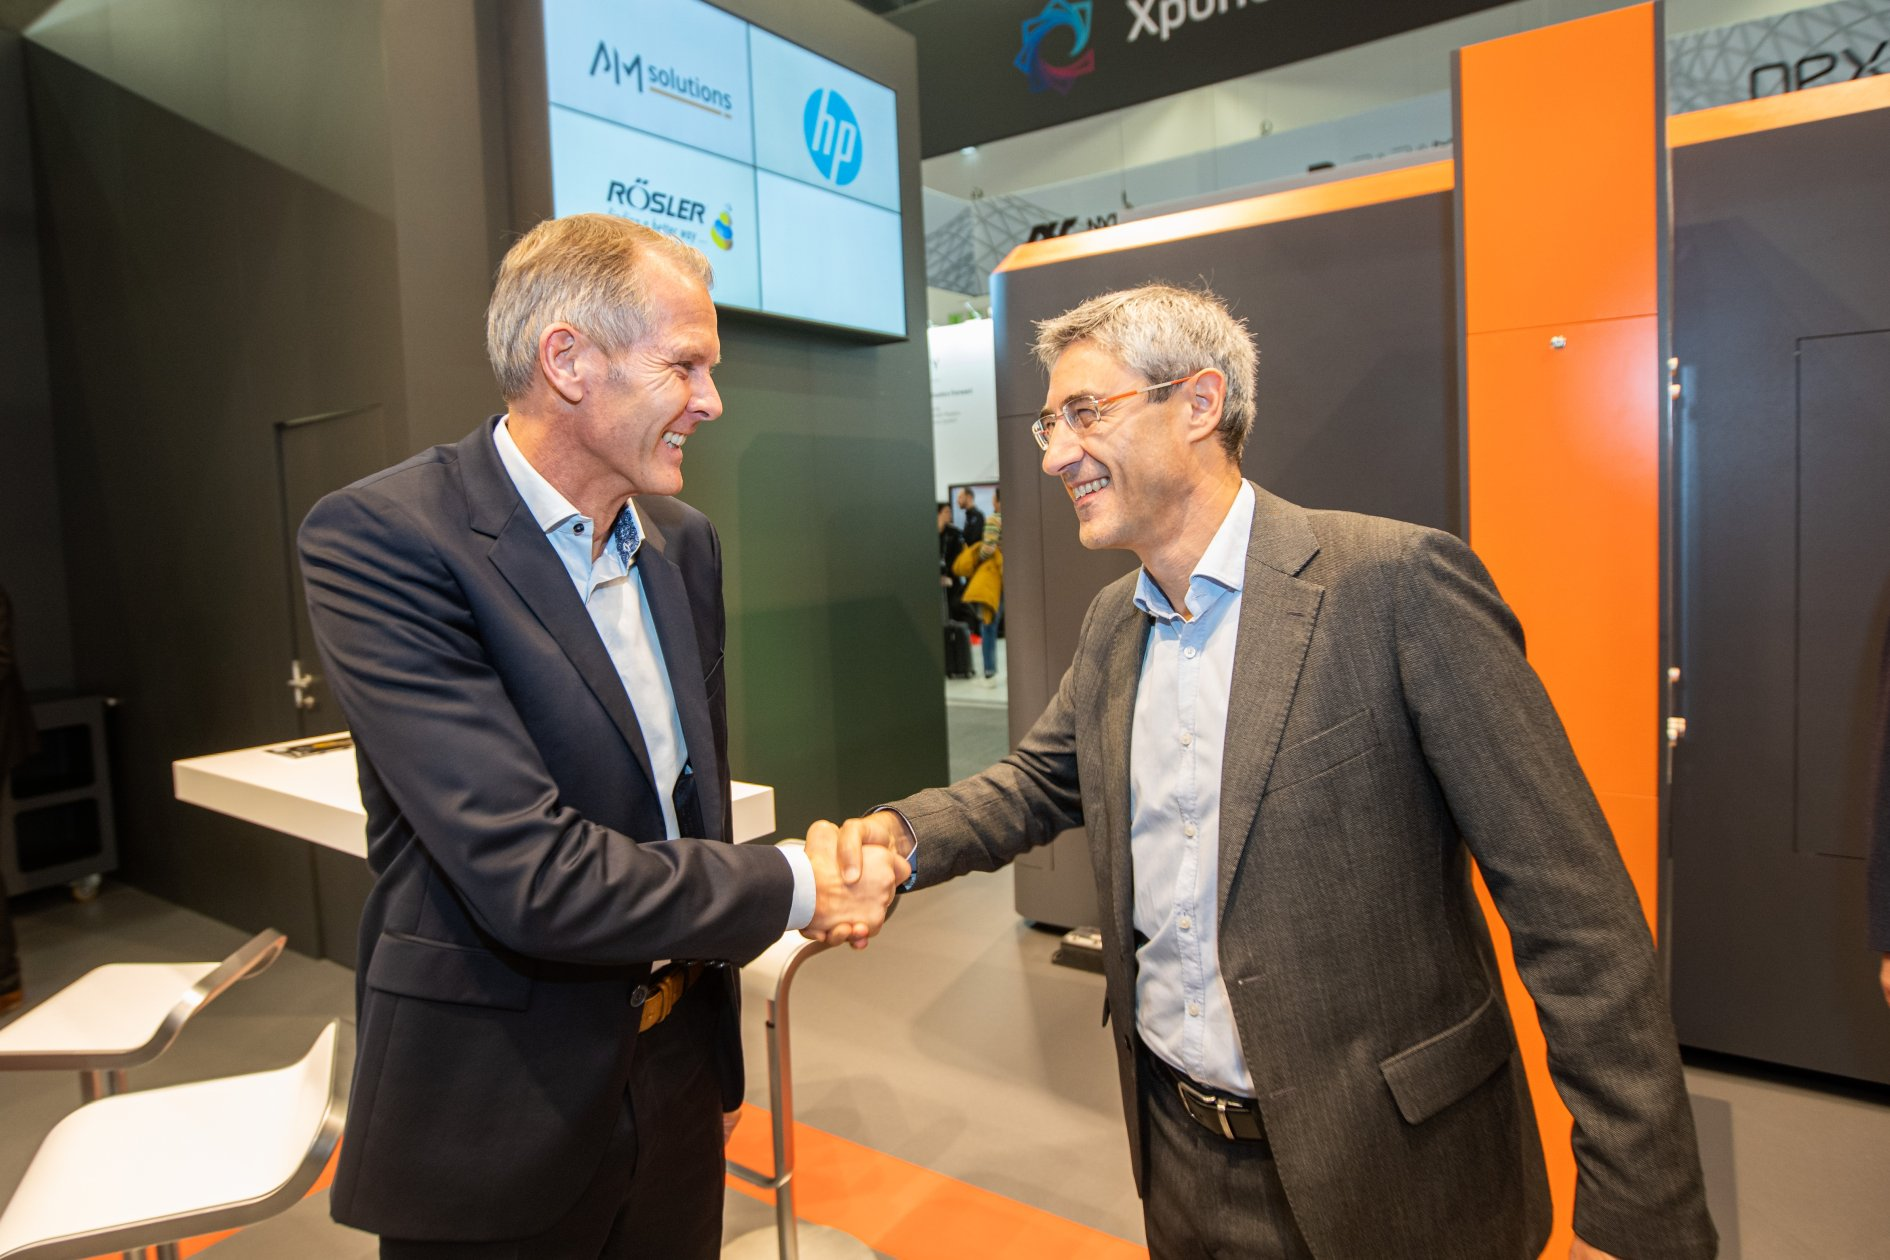 HP and AM Solutions collaborate to develop automated Multi Jet Fusion post processing technology